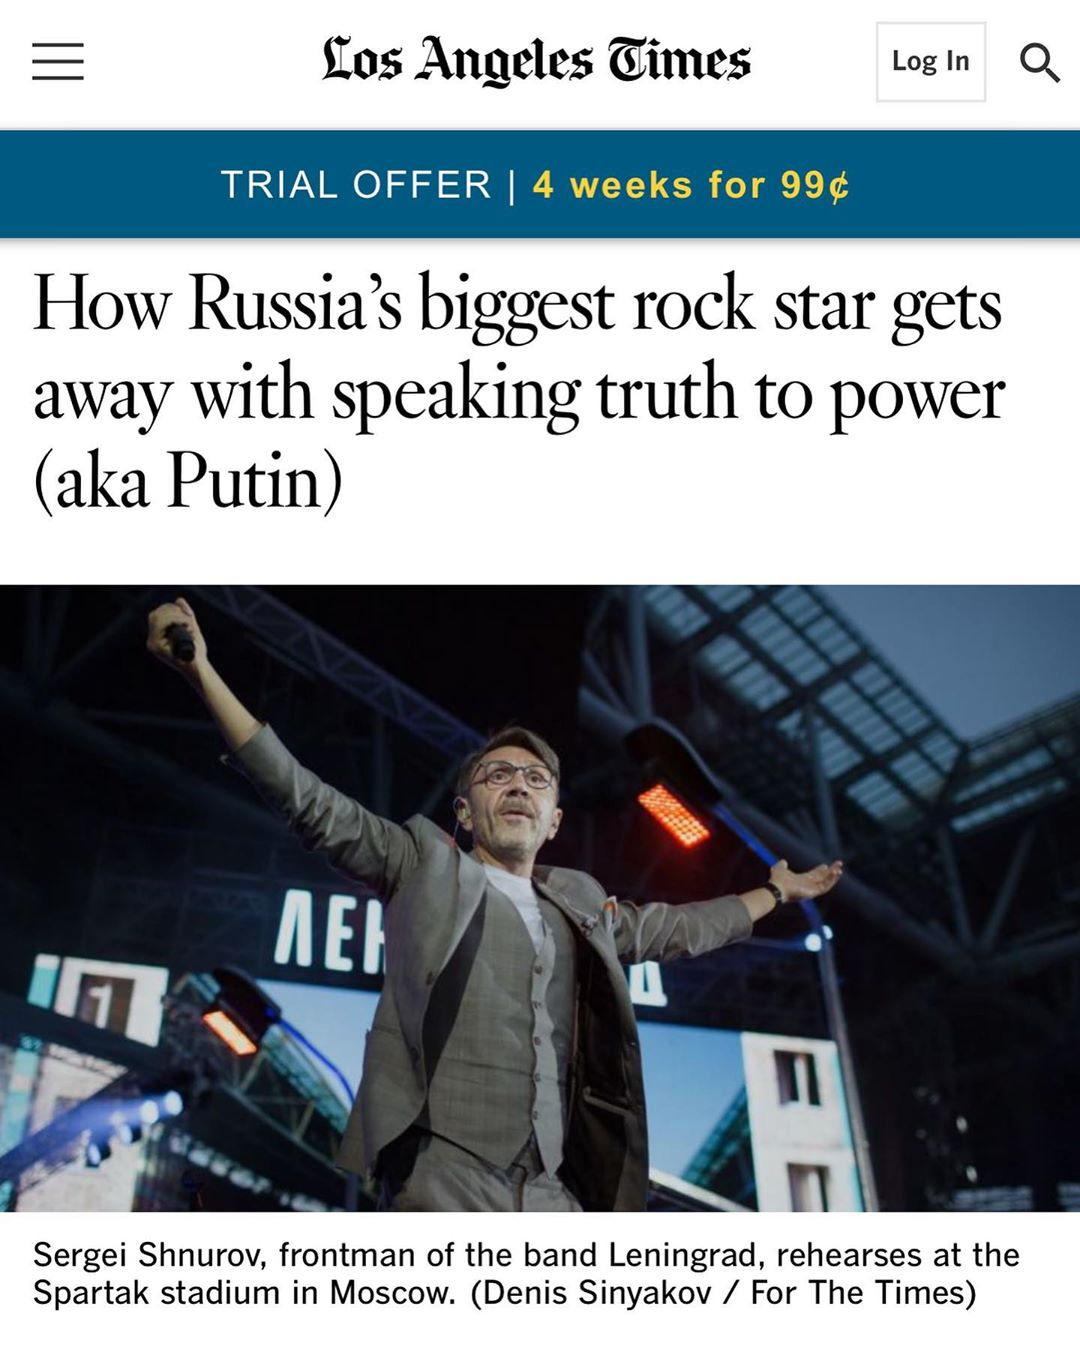 How Russia's biggest rock star gets away with speaking truth to power (a.k.a. Putin)